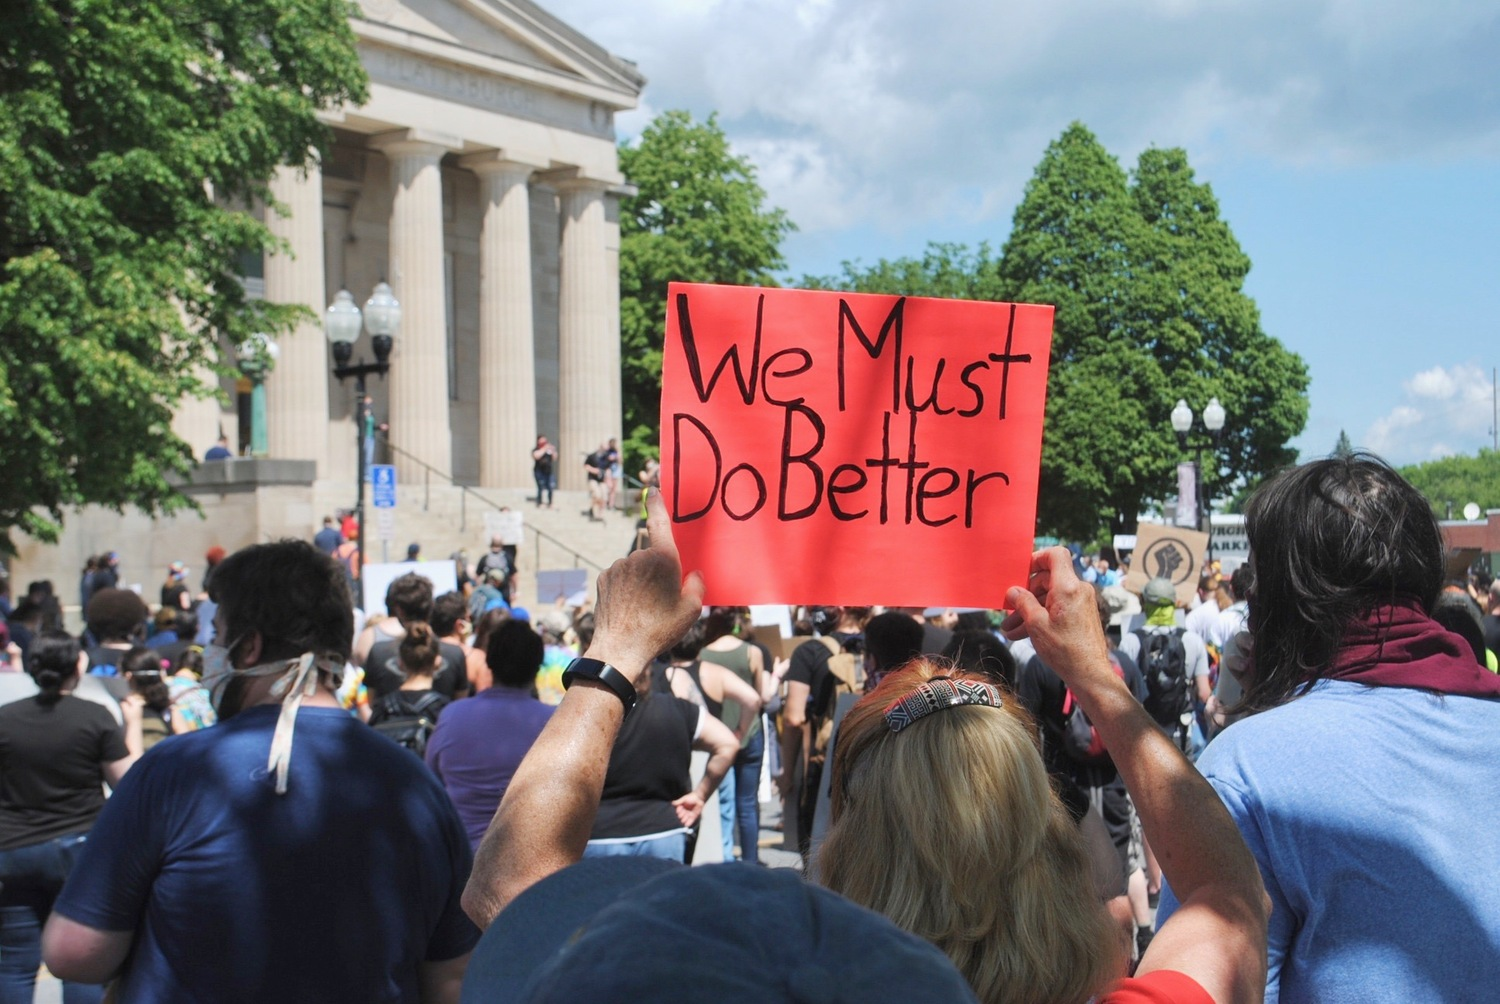 A sign held up at the Black Lives Matter protest in Plattsburgh in June 2020, just days after George Floyd was killed by police in Minneapolis. Photo: Emily Russell